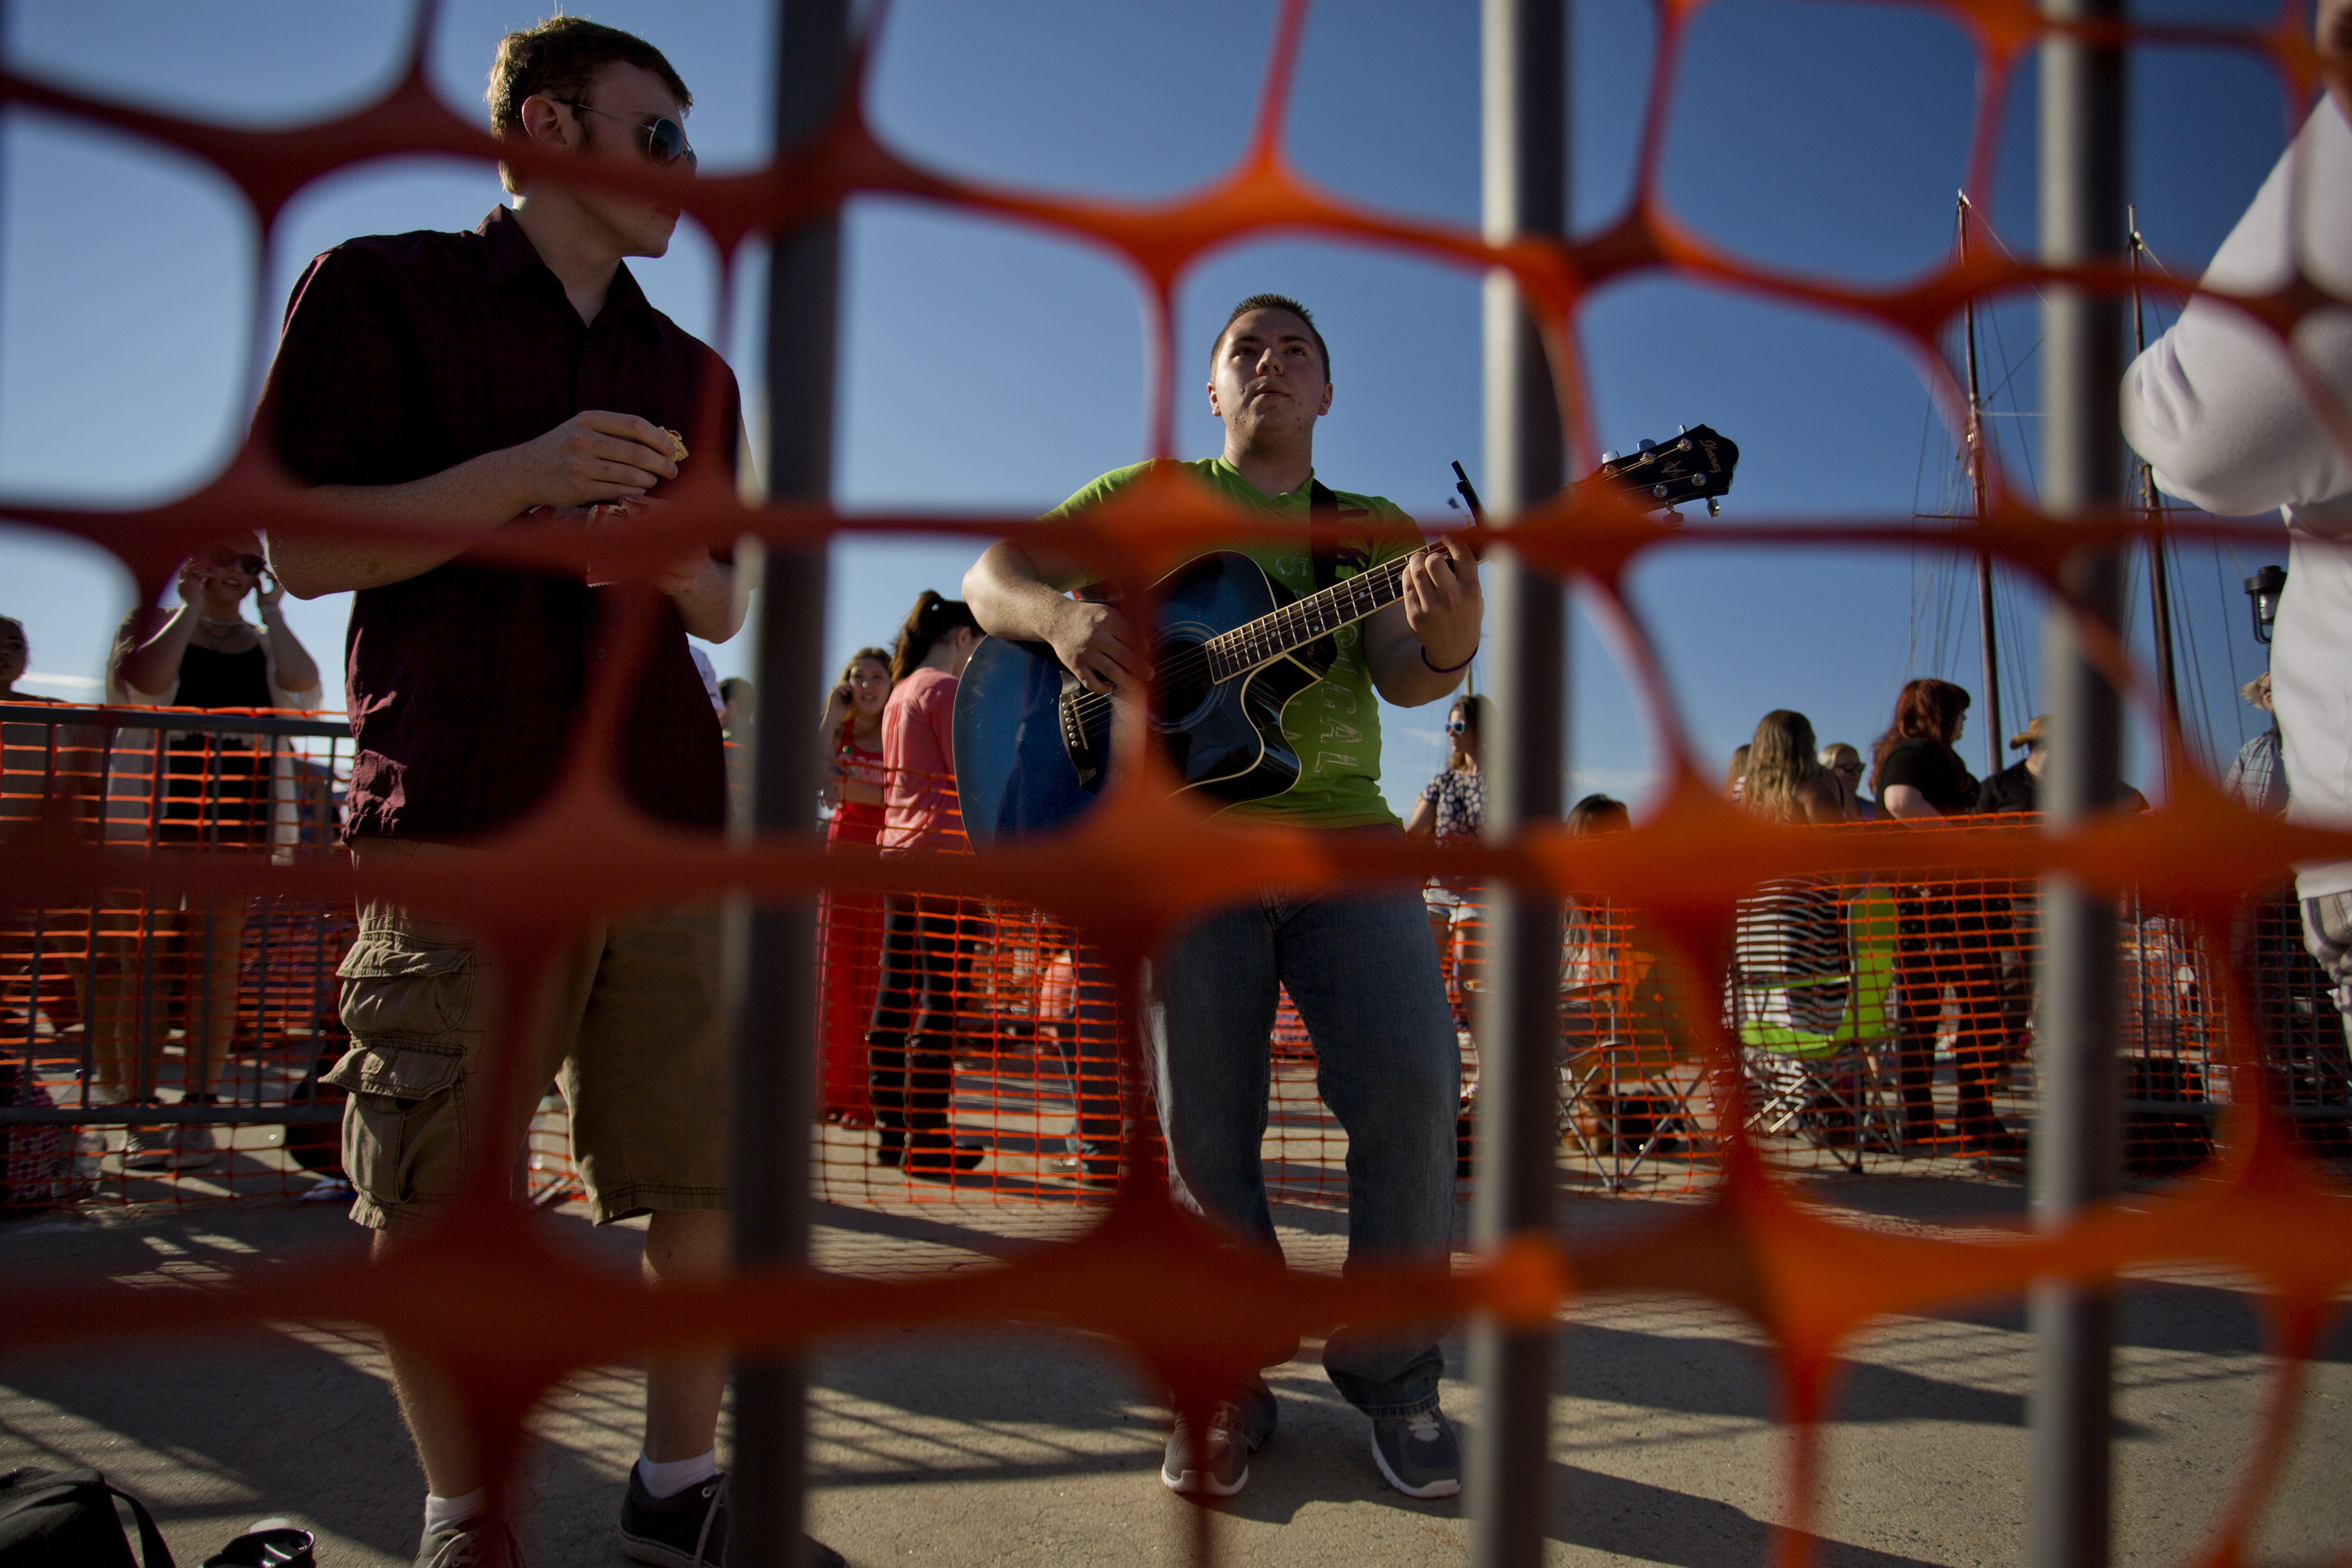 Ben Cooper, 18, of Hollis, N.H., at left, waits in line with Andrew White, 17, of Waite, while he plays guitar, as they two wait to audition for American Idol.